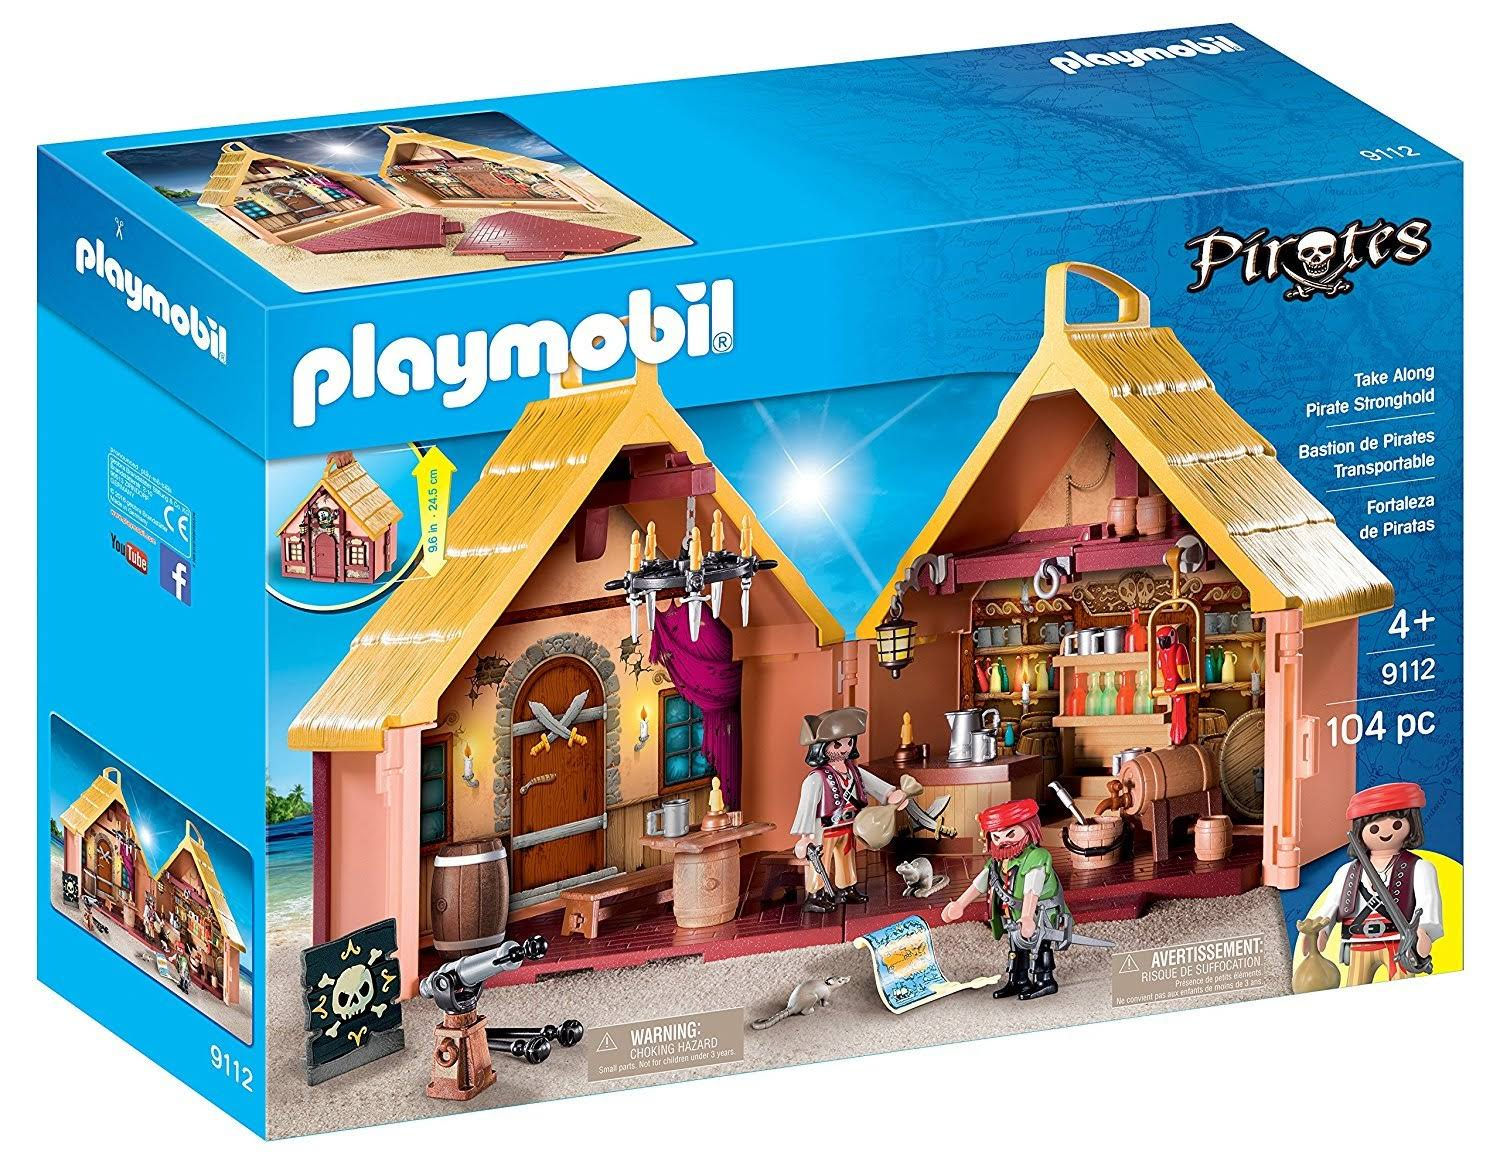 Playmobil 9112 Pirates Pretend Play Toy - Take Along Pirate Stronghold